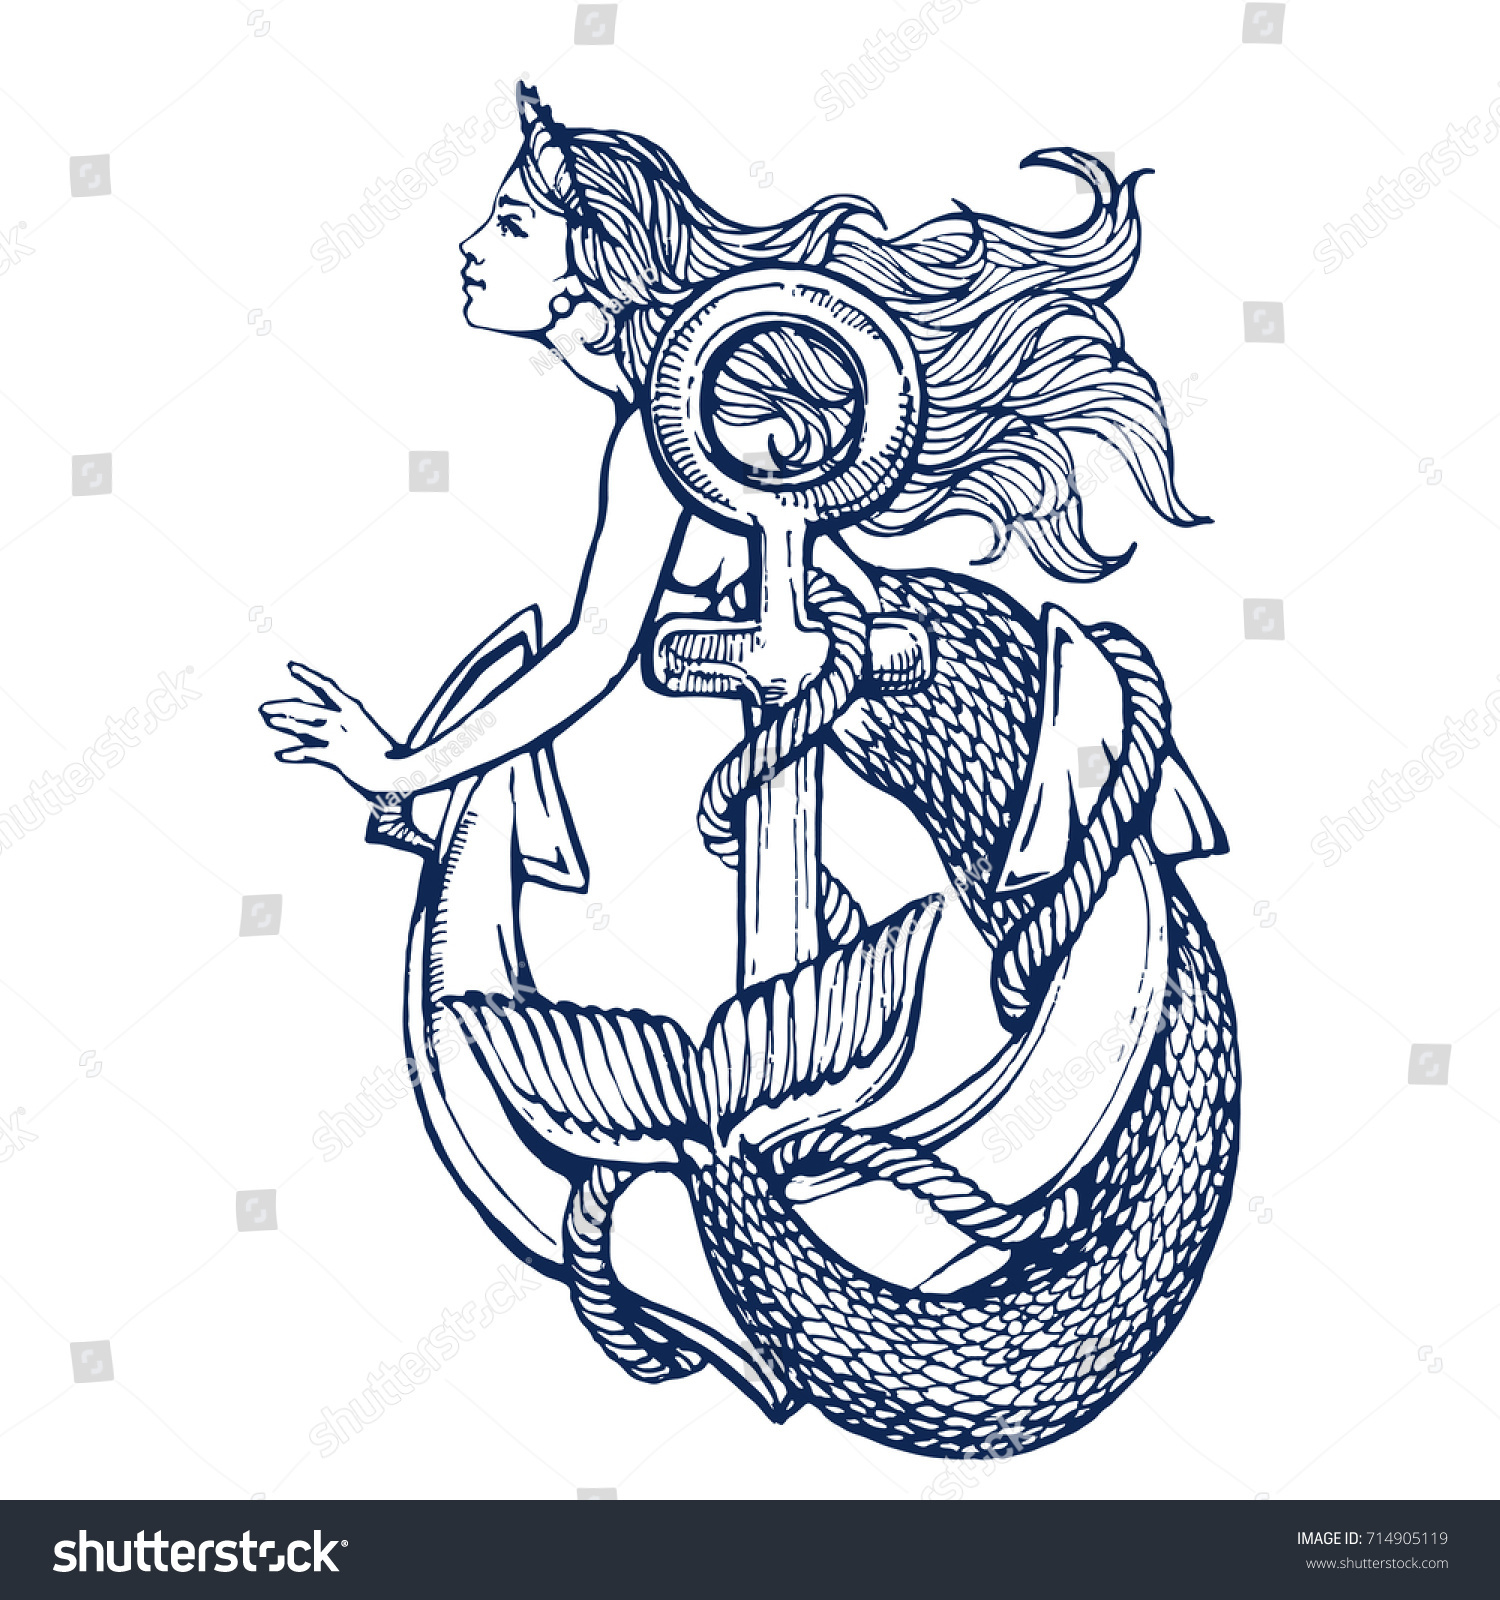 Mermaid With Anchor Tattoo Hand Drawn Ink Sketch Stock Vector Illustration Coloring Book Page